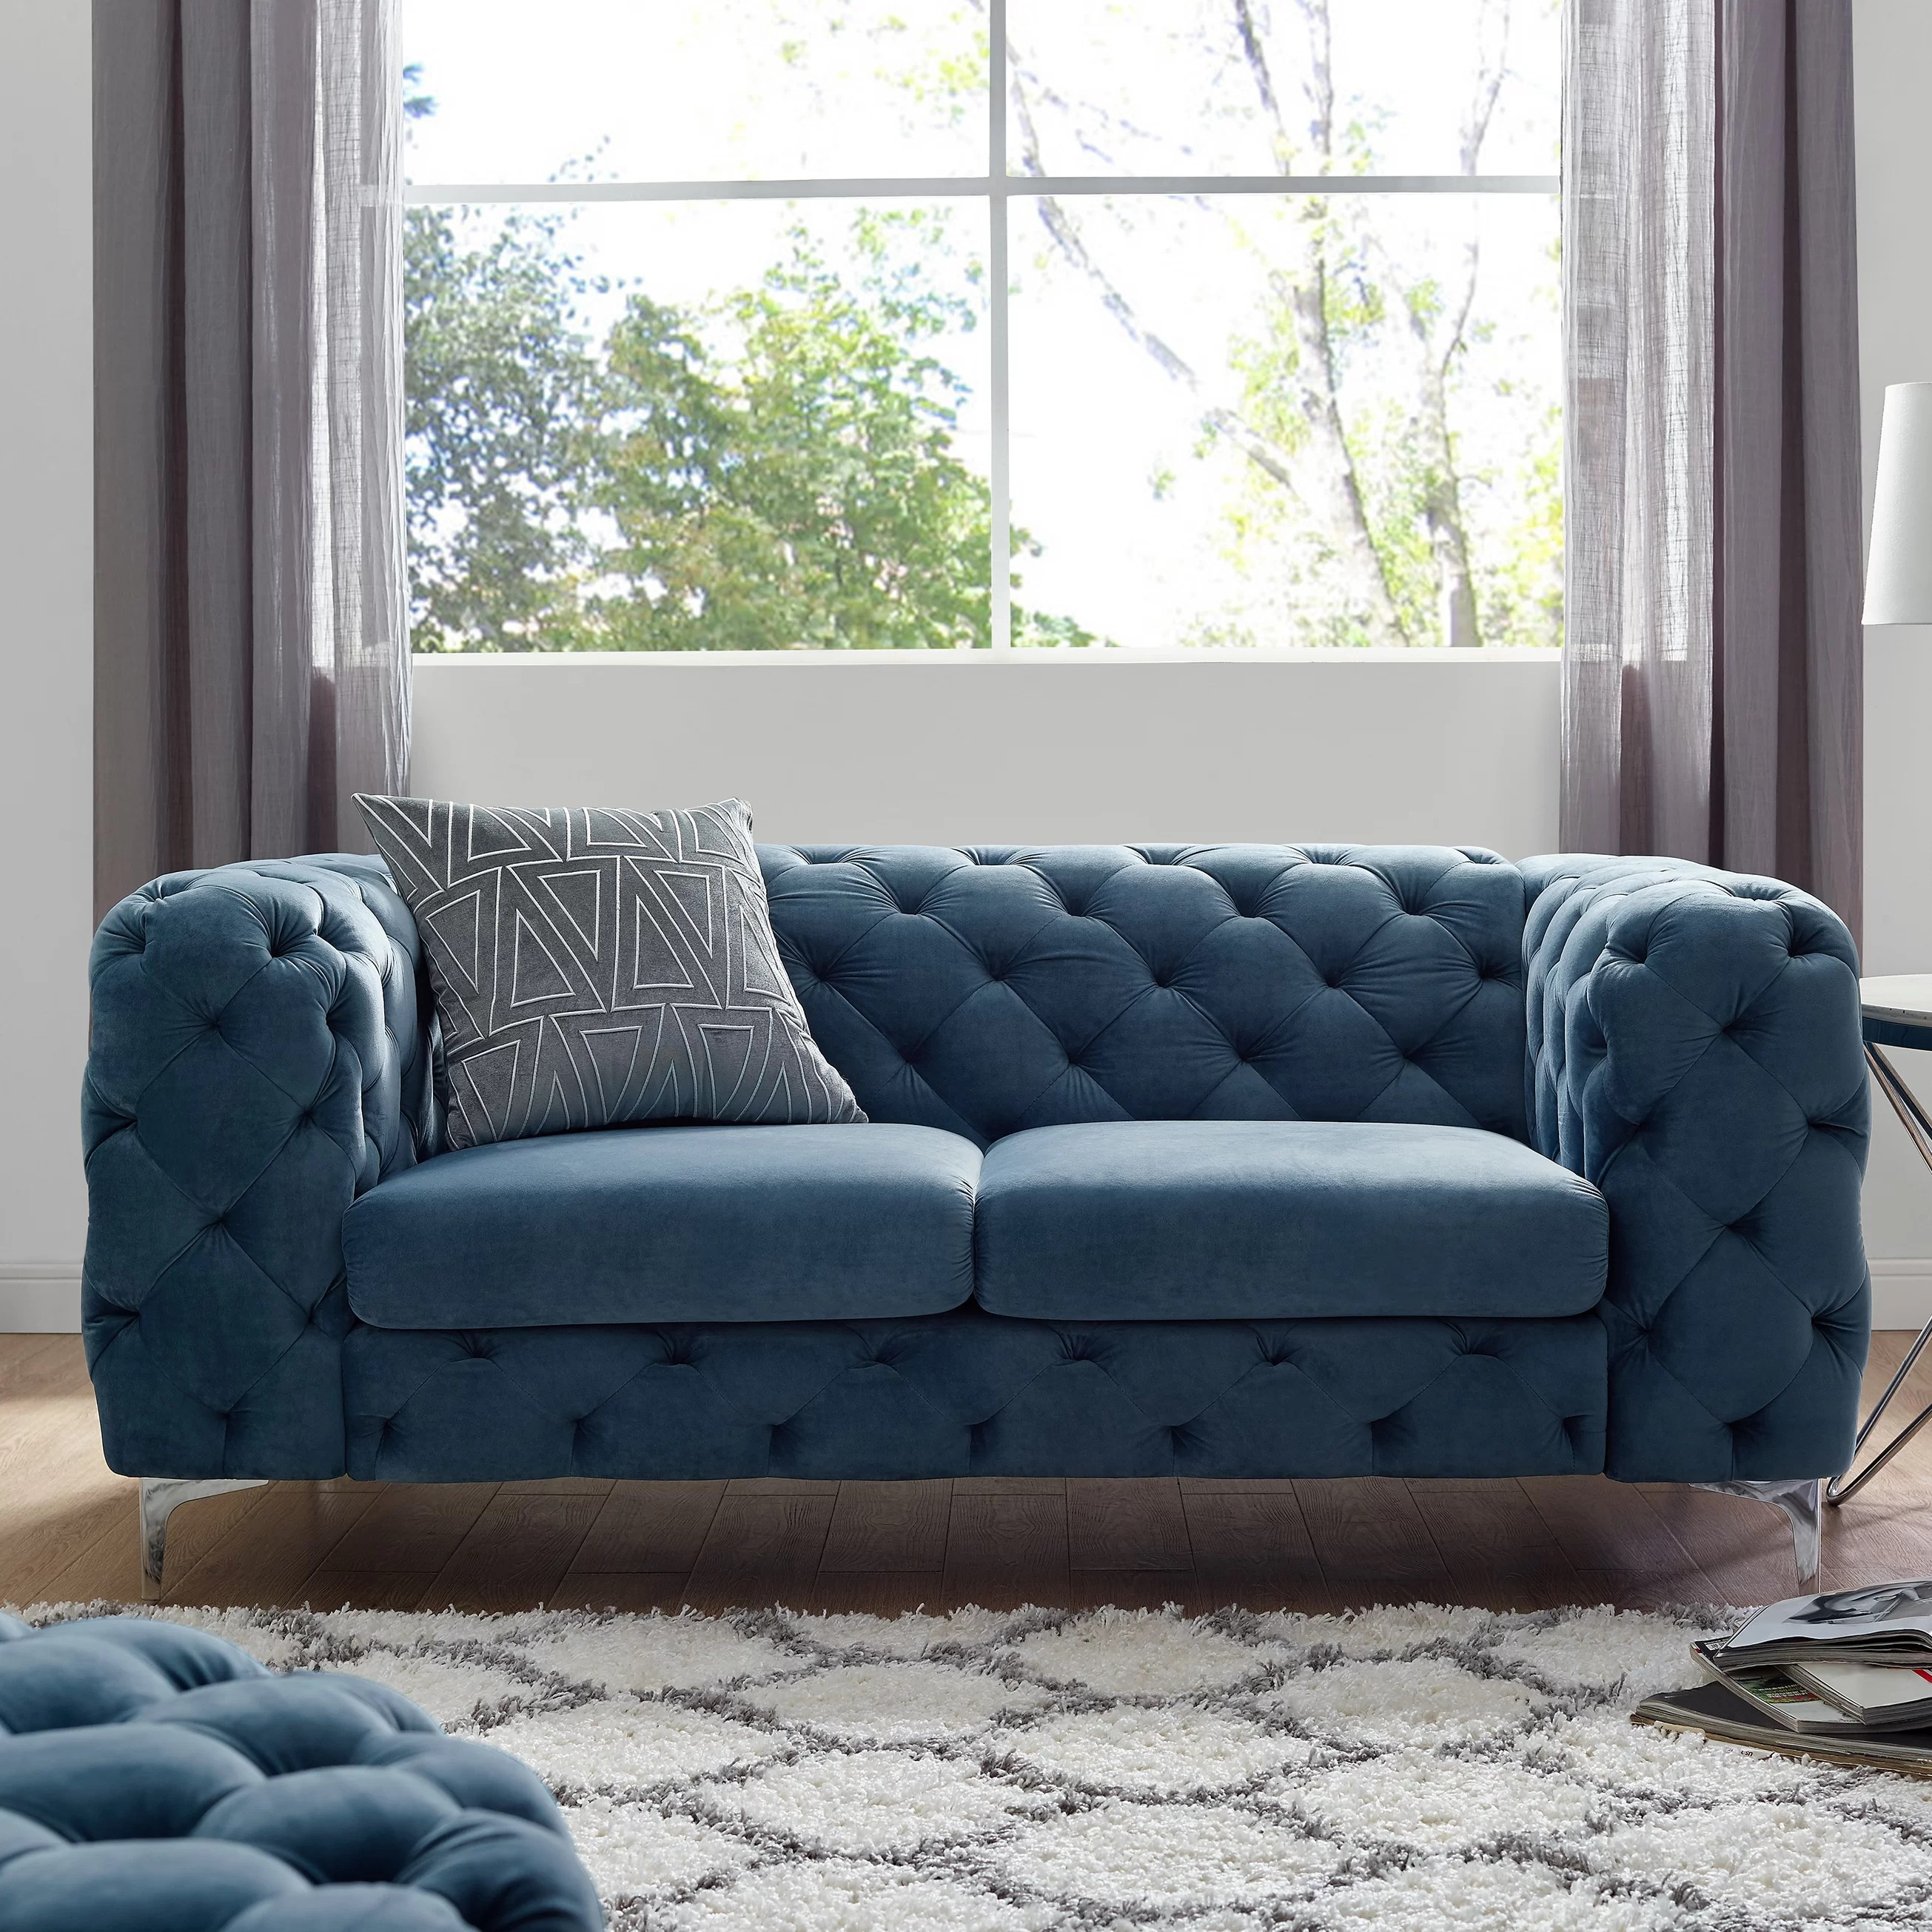 Sofa In Chesterfield Look Koger Chesterfield Loveseat